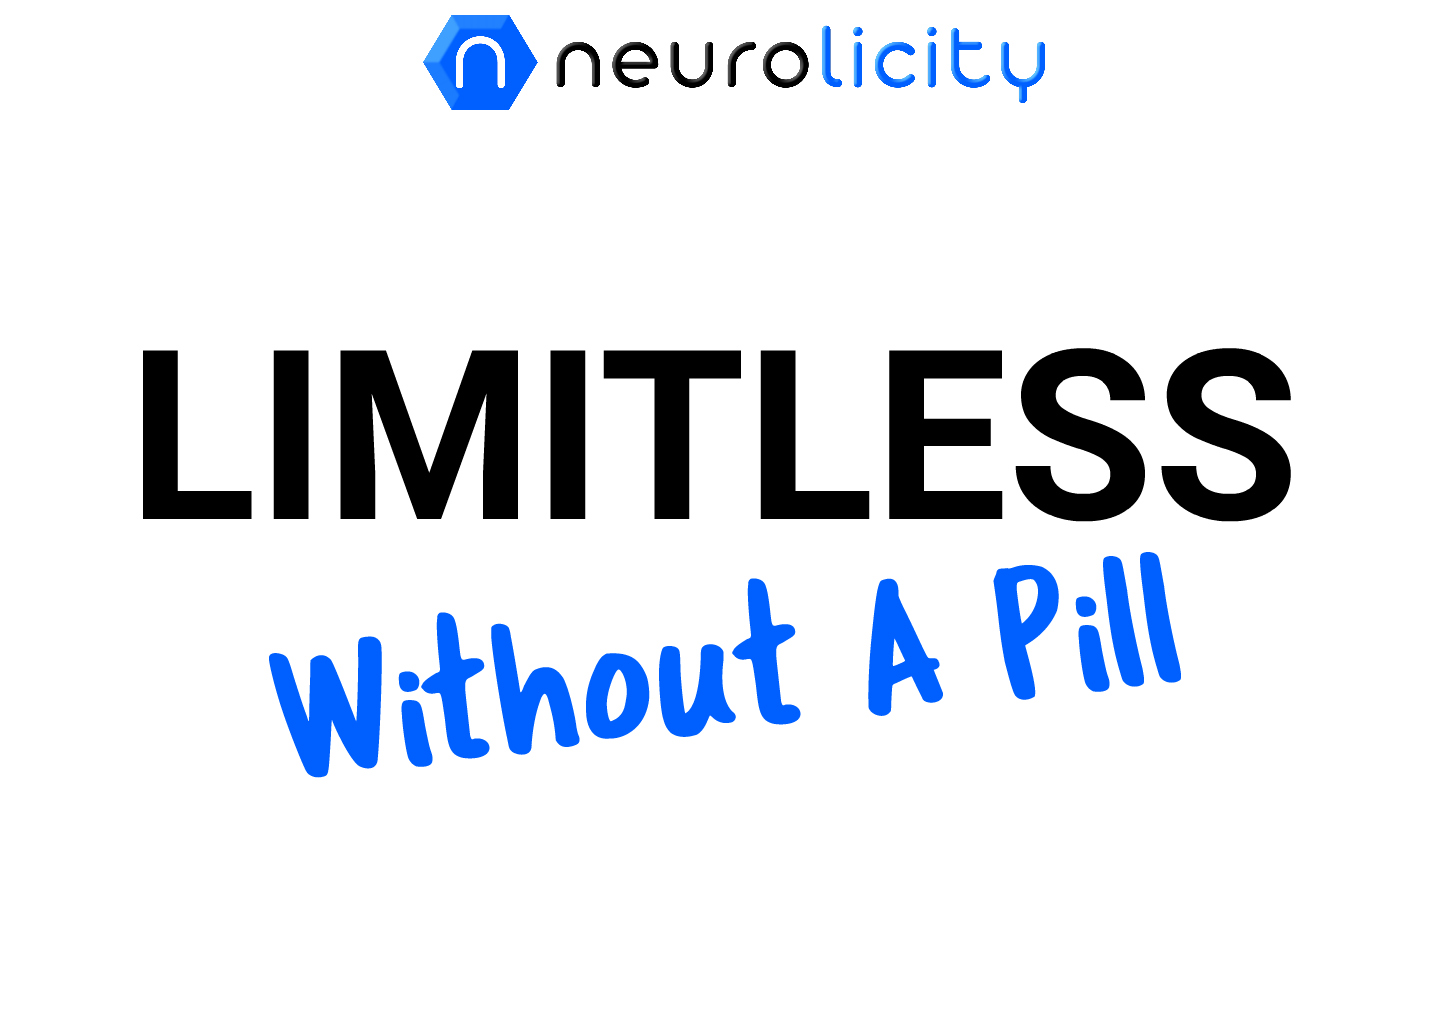 LIMITLESS (Without A Pill)